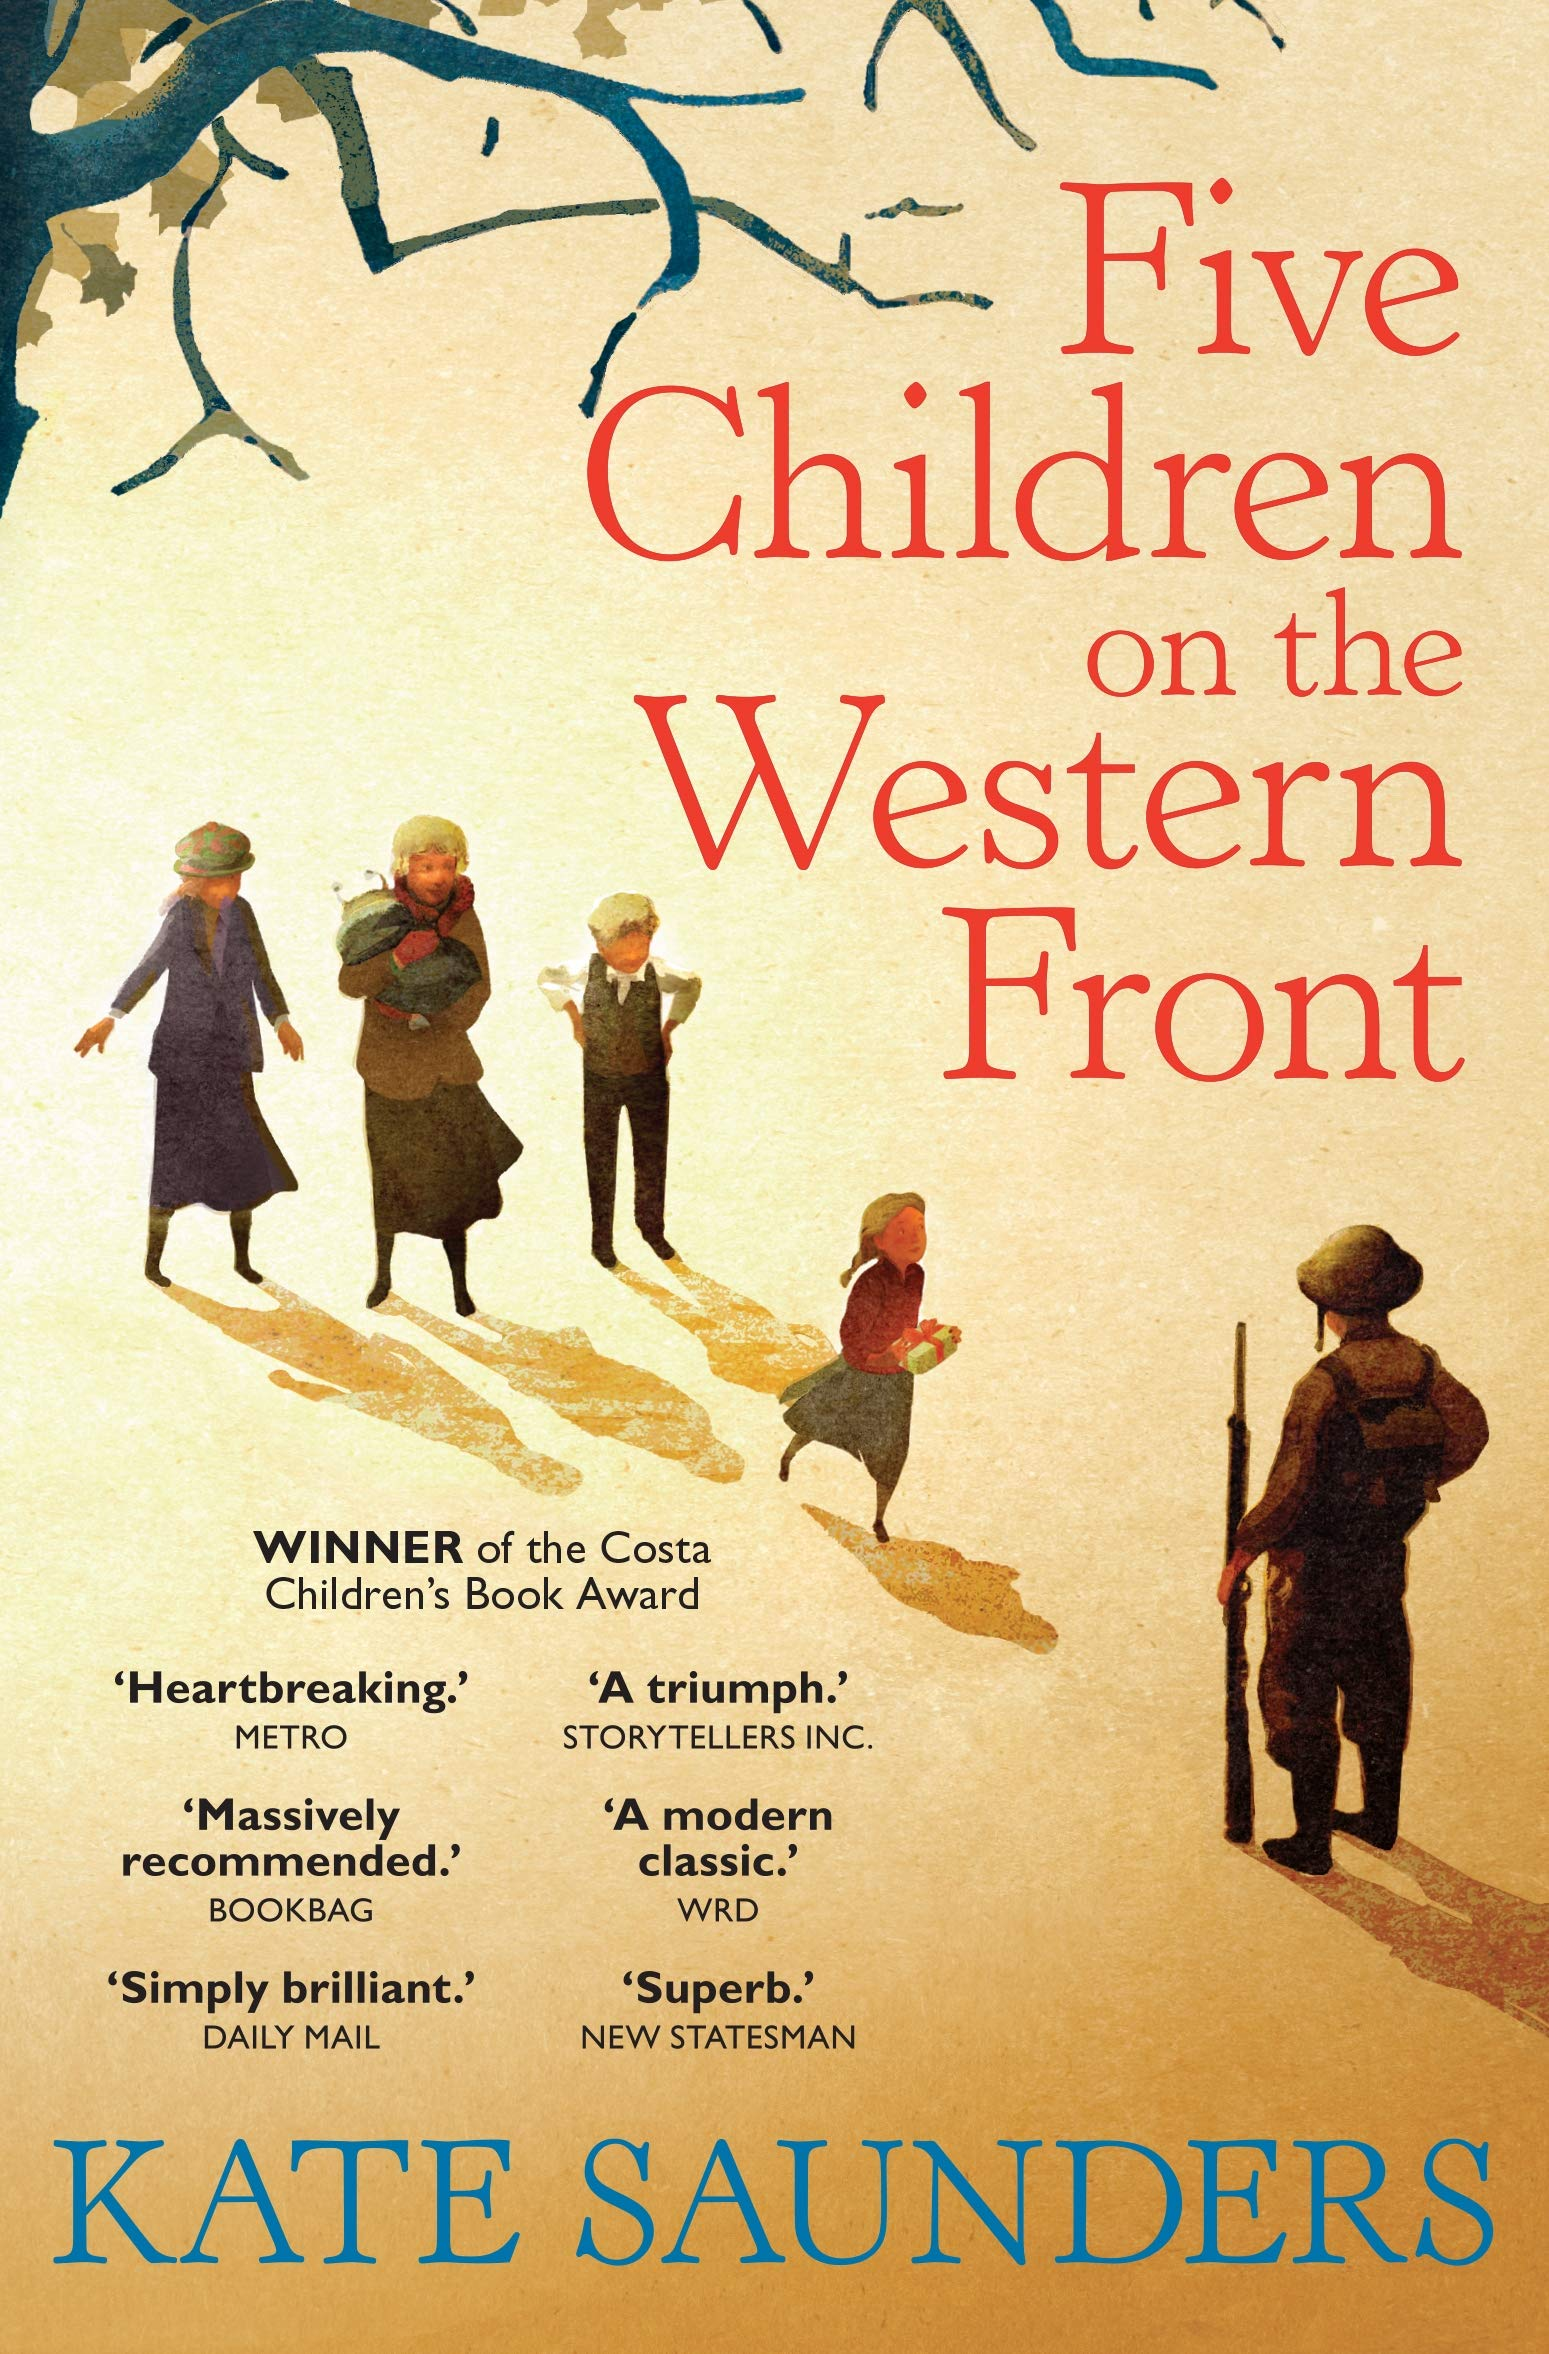 Five Children on the Western Front: Amazon.co.uk: Kate Saunders: Books